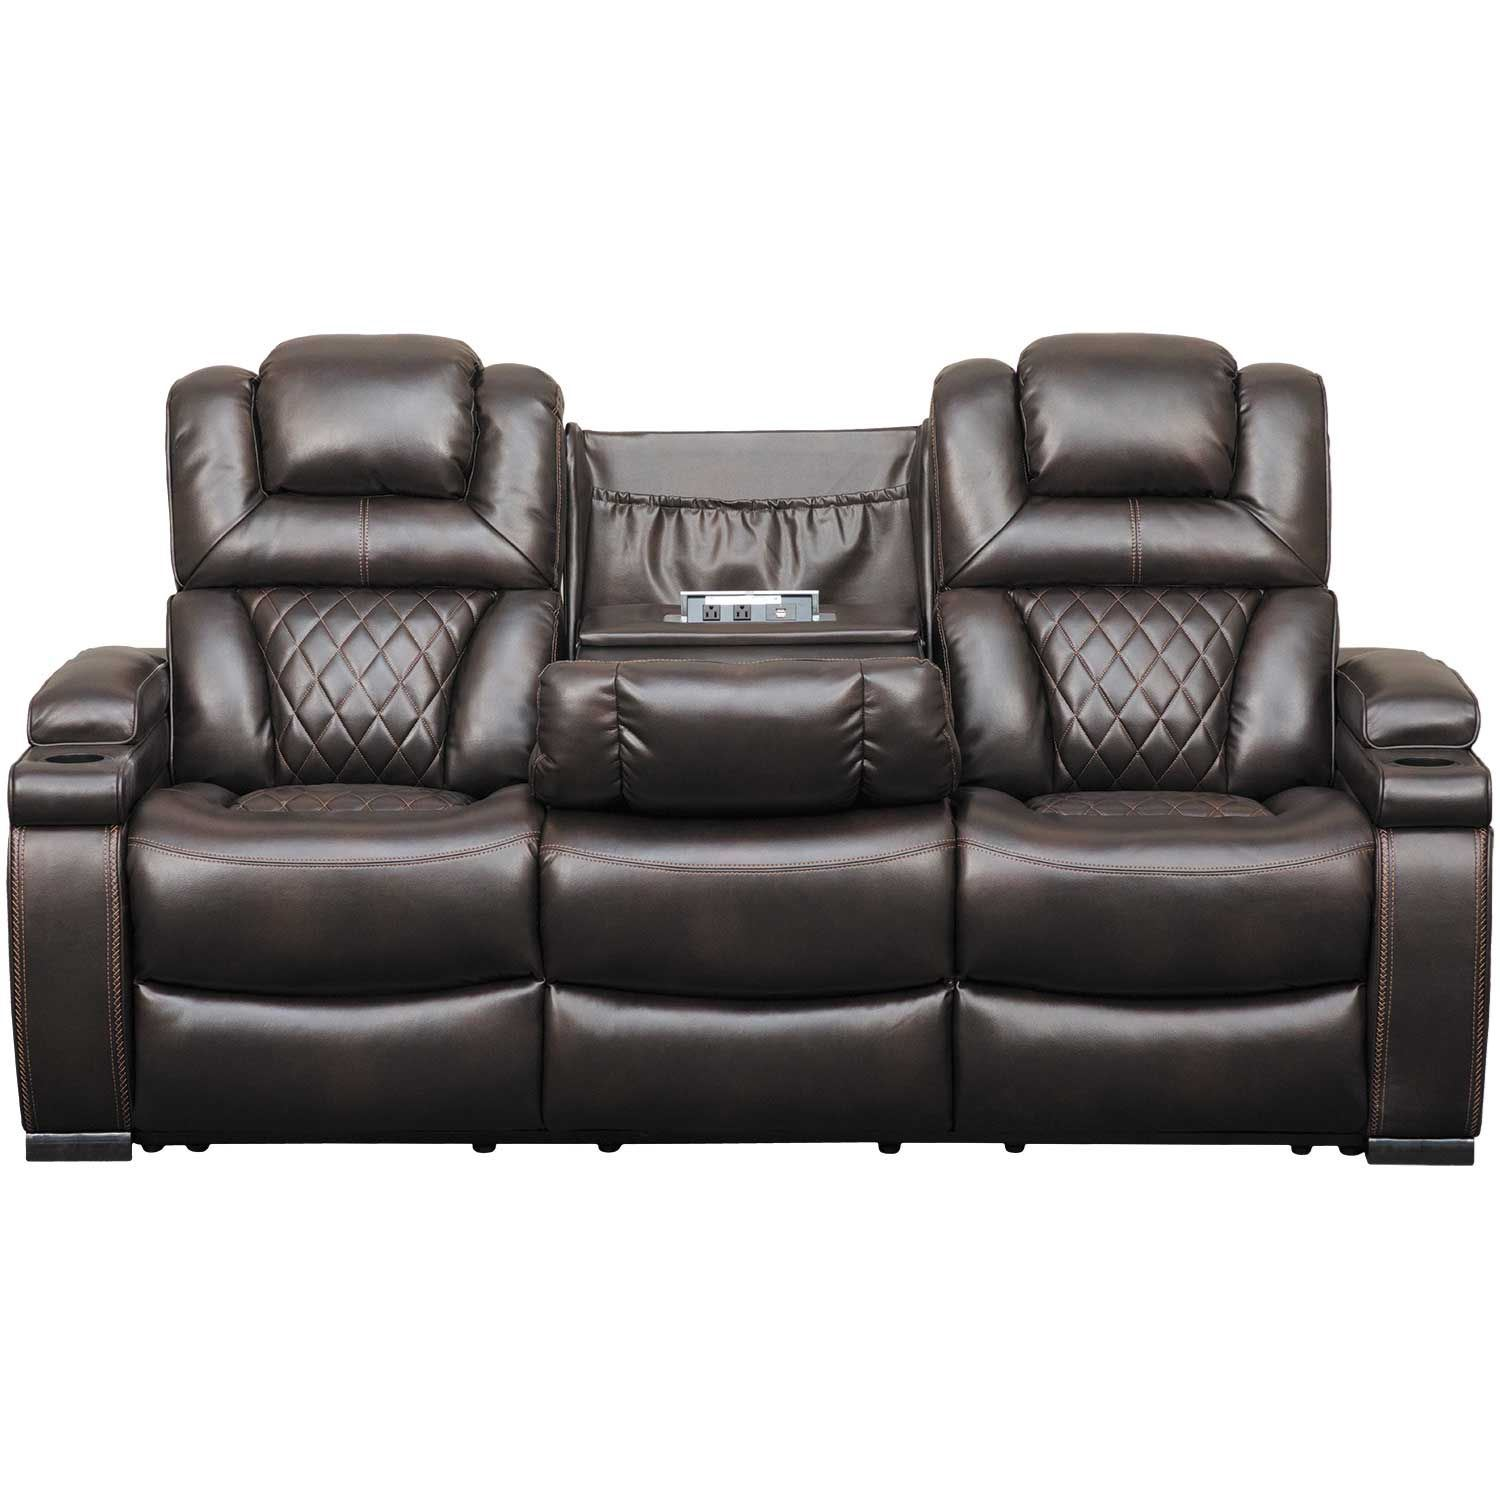 Low Price Couches Sale